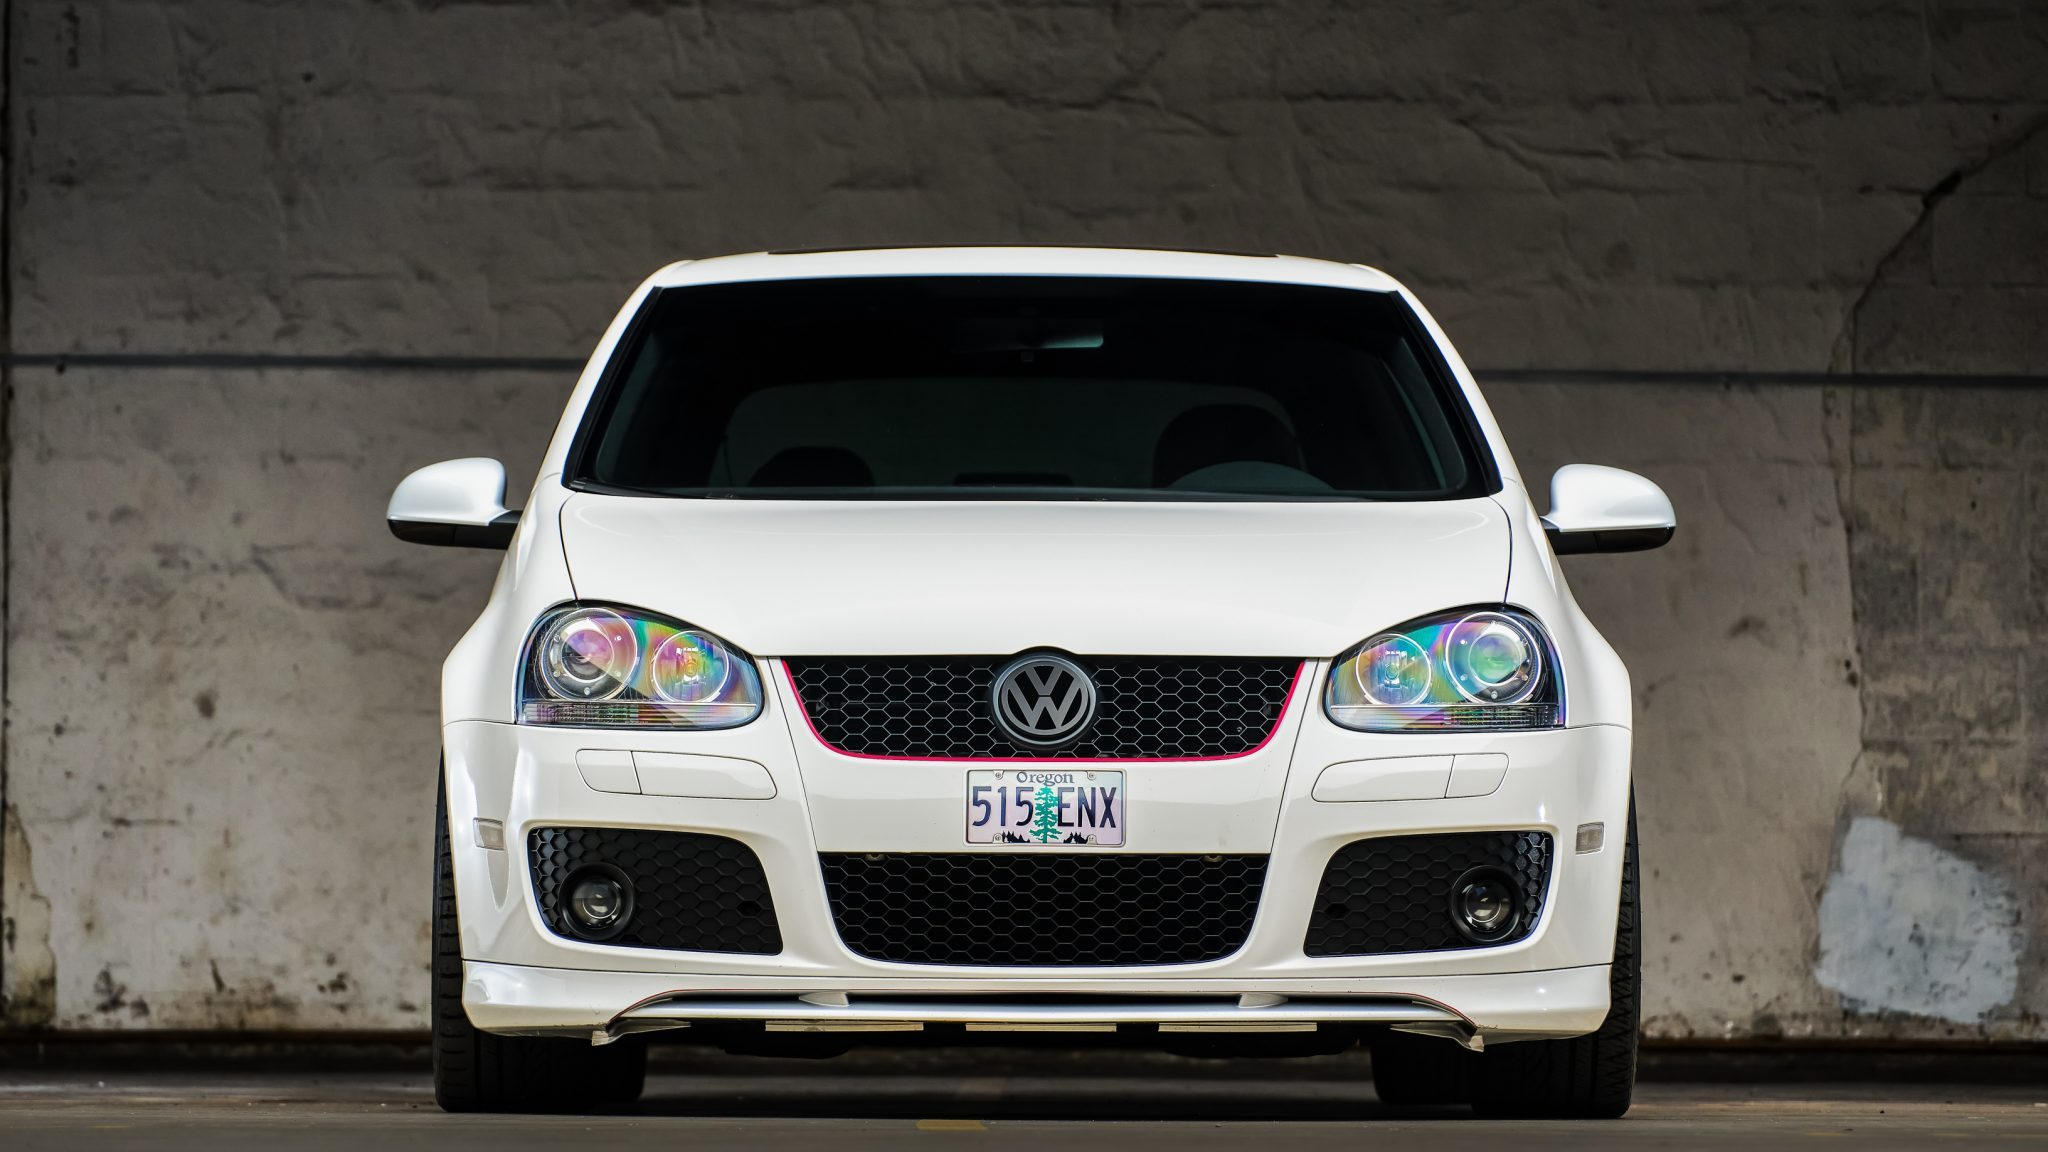 15941393973a27a81fe3f57bfc5VW-GTI-for-Sale-A-GC.com-5-scaled